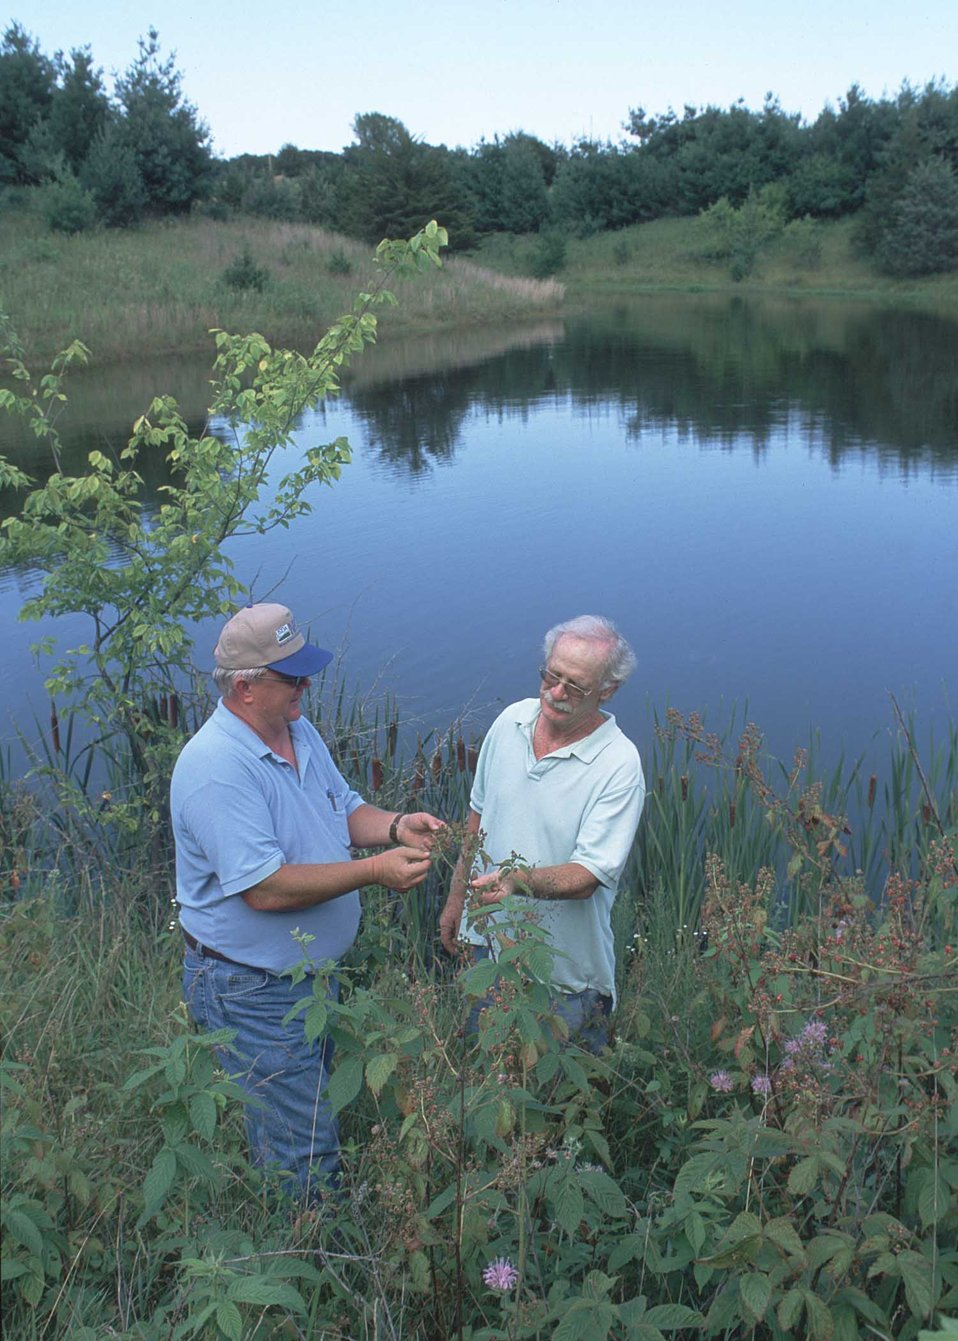 A well-designed farm pond with surrounding wildlife habitat was planned with NRCS assistance to offer excellent recreation in rural Van Bure